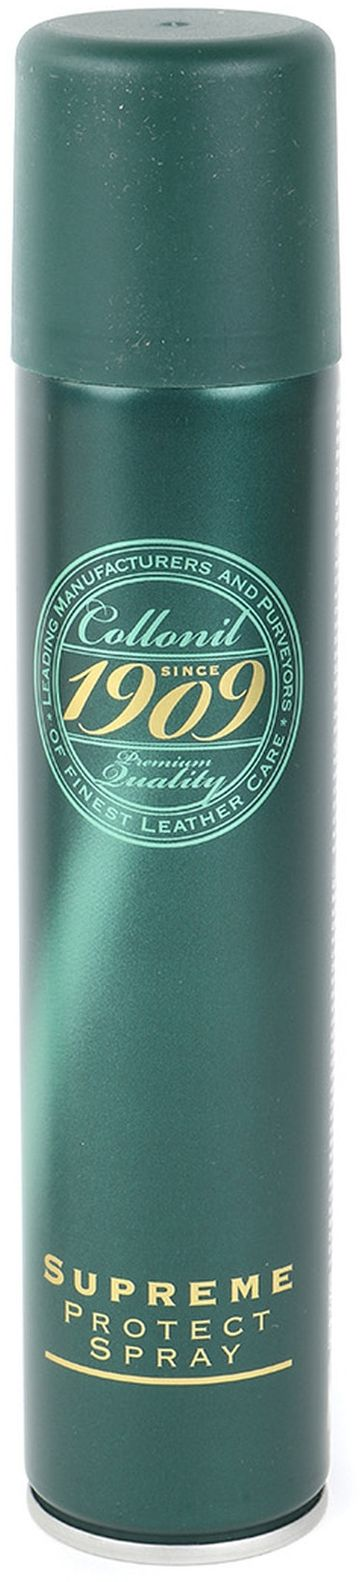 Collonil 1909 Supreme Protect Spray